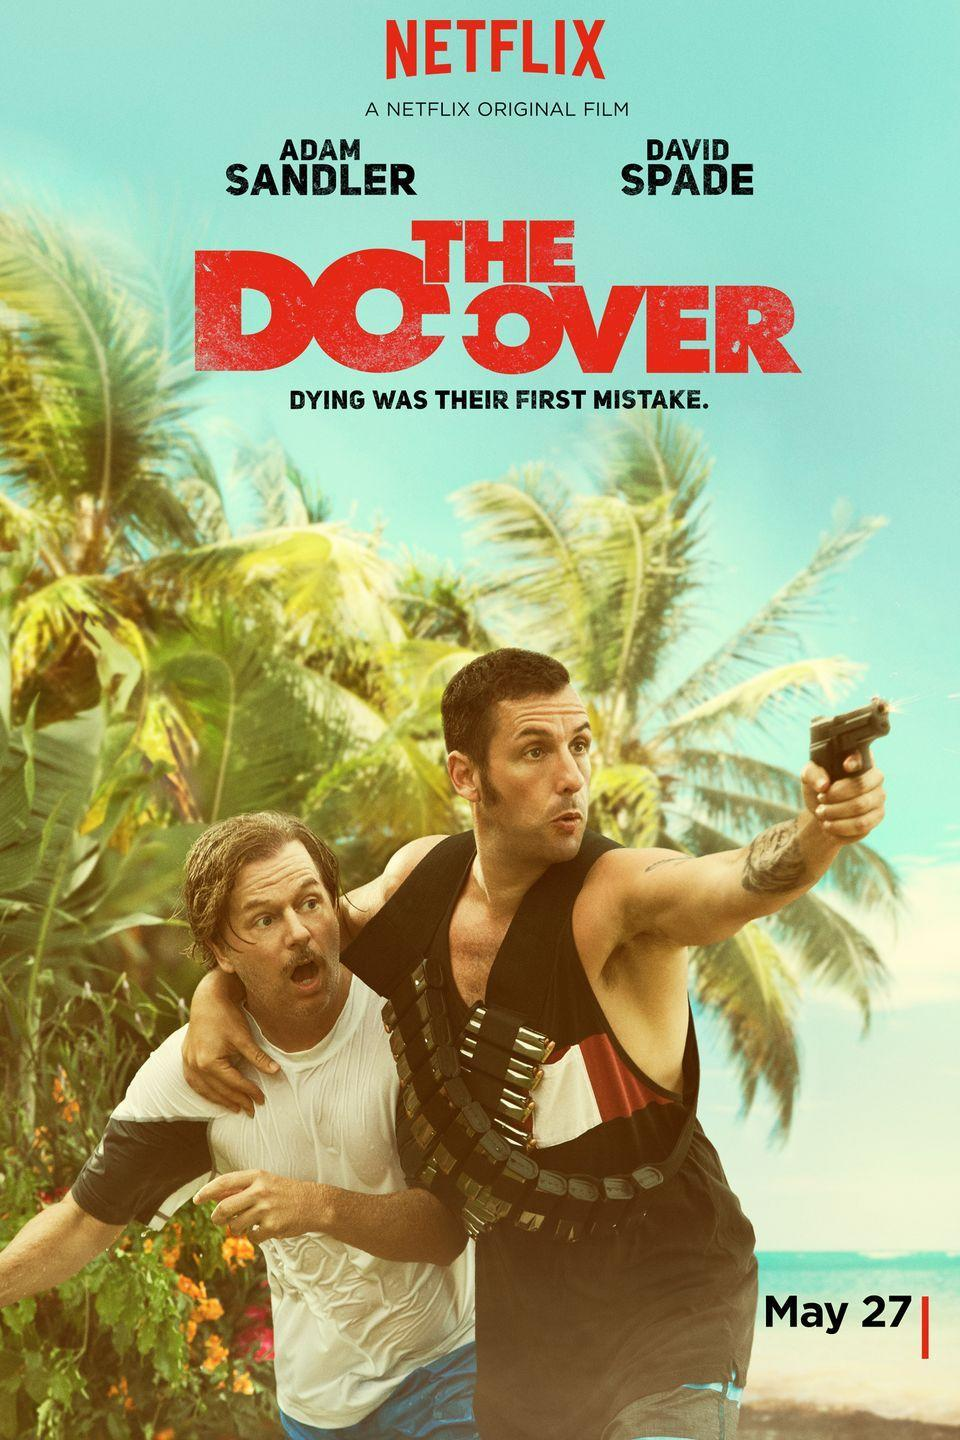 <p><strong>Role: </strong>Max Kessler<br></p><p>They need a do-over on <em>The Do-Over</em> to try to make a good movie. And this crappy pun is funnier than this entire film.<br></p>